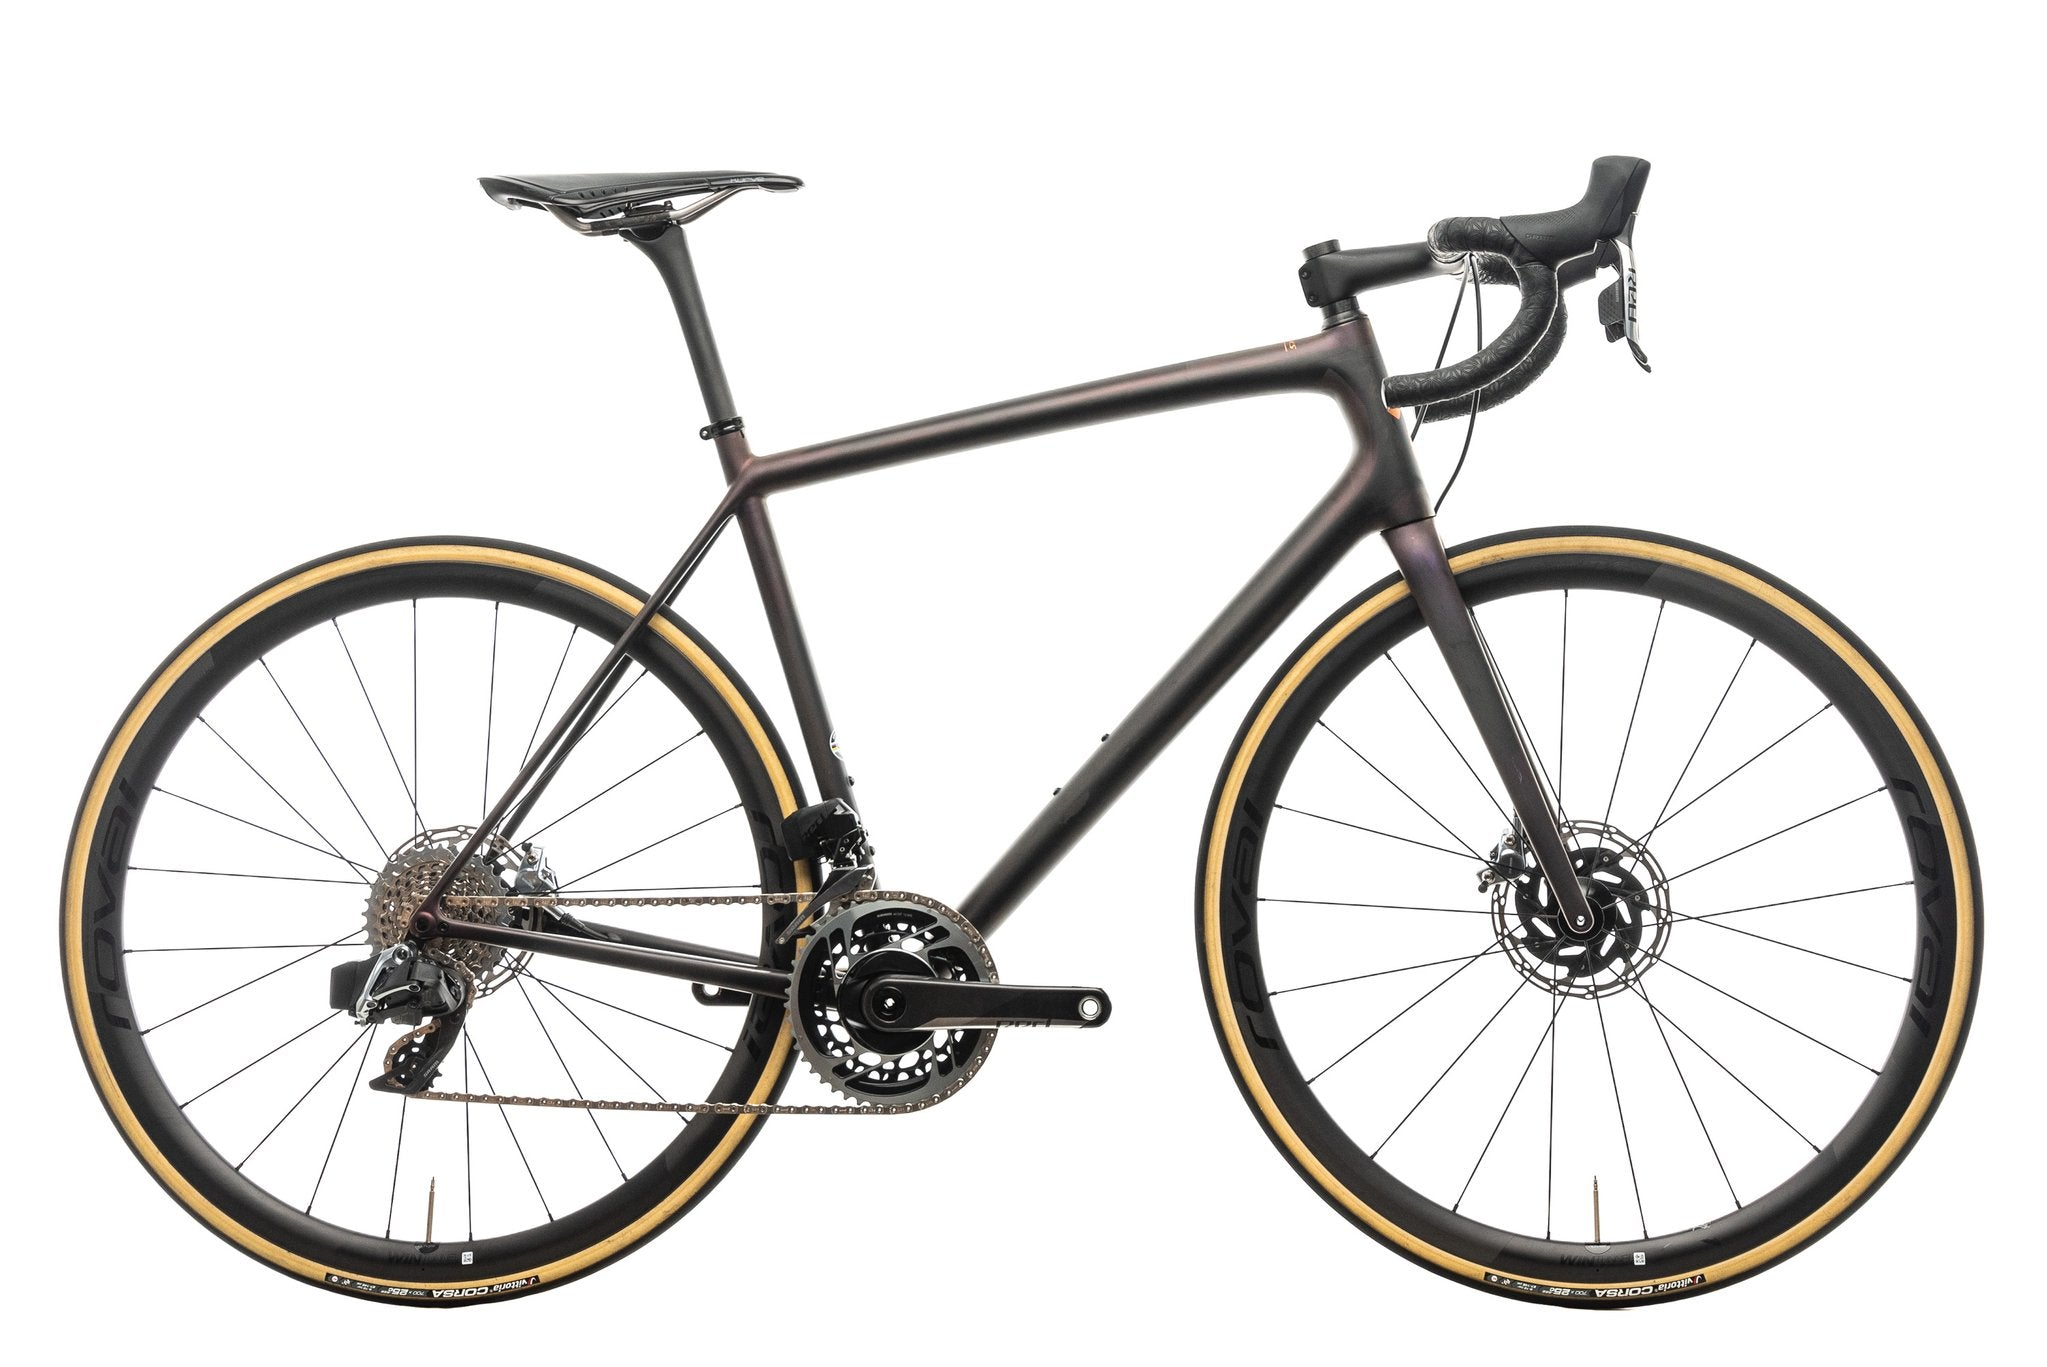 Father's day cycling bike gift guide idea Specialized S-works Aethos road bike